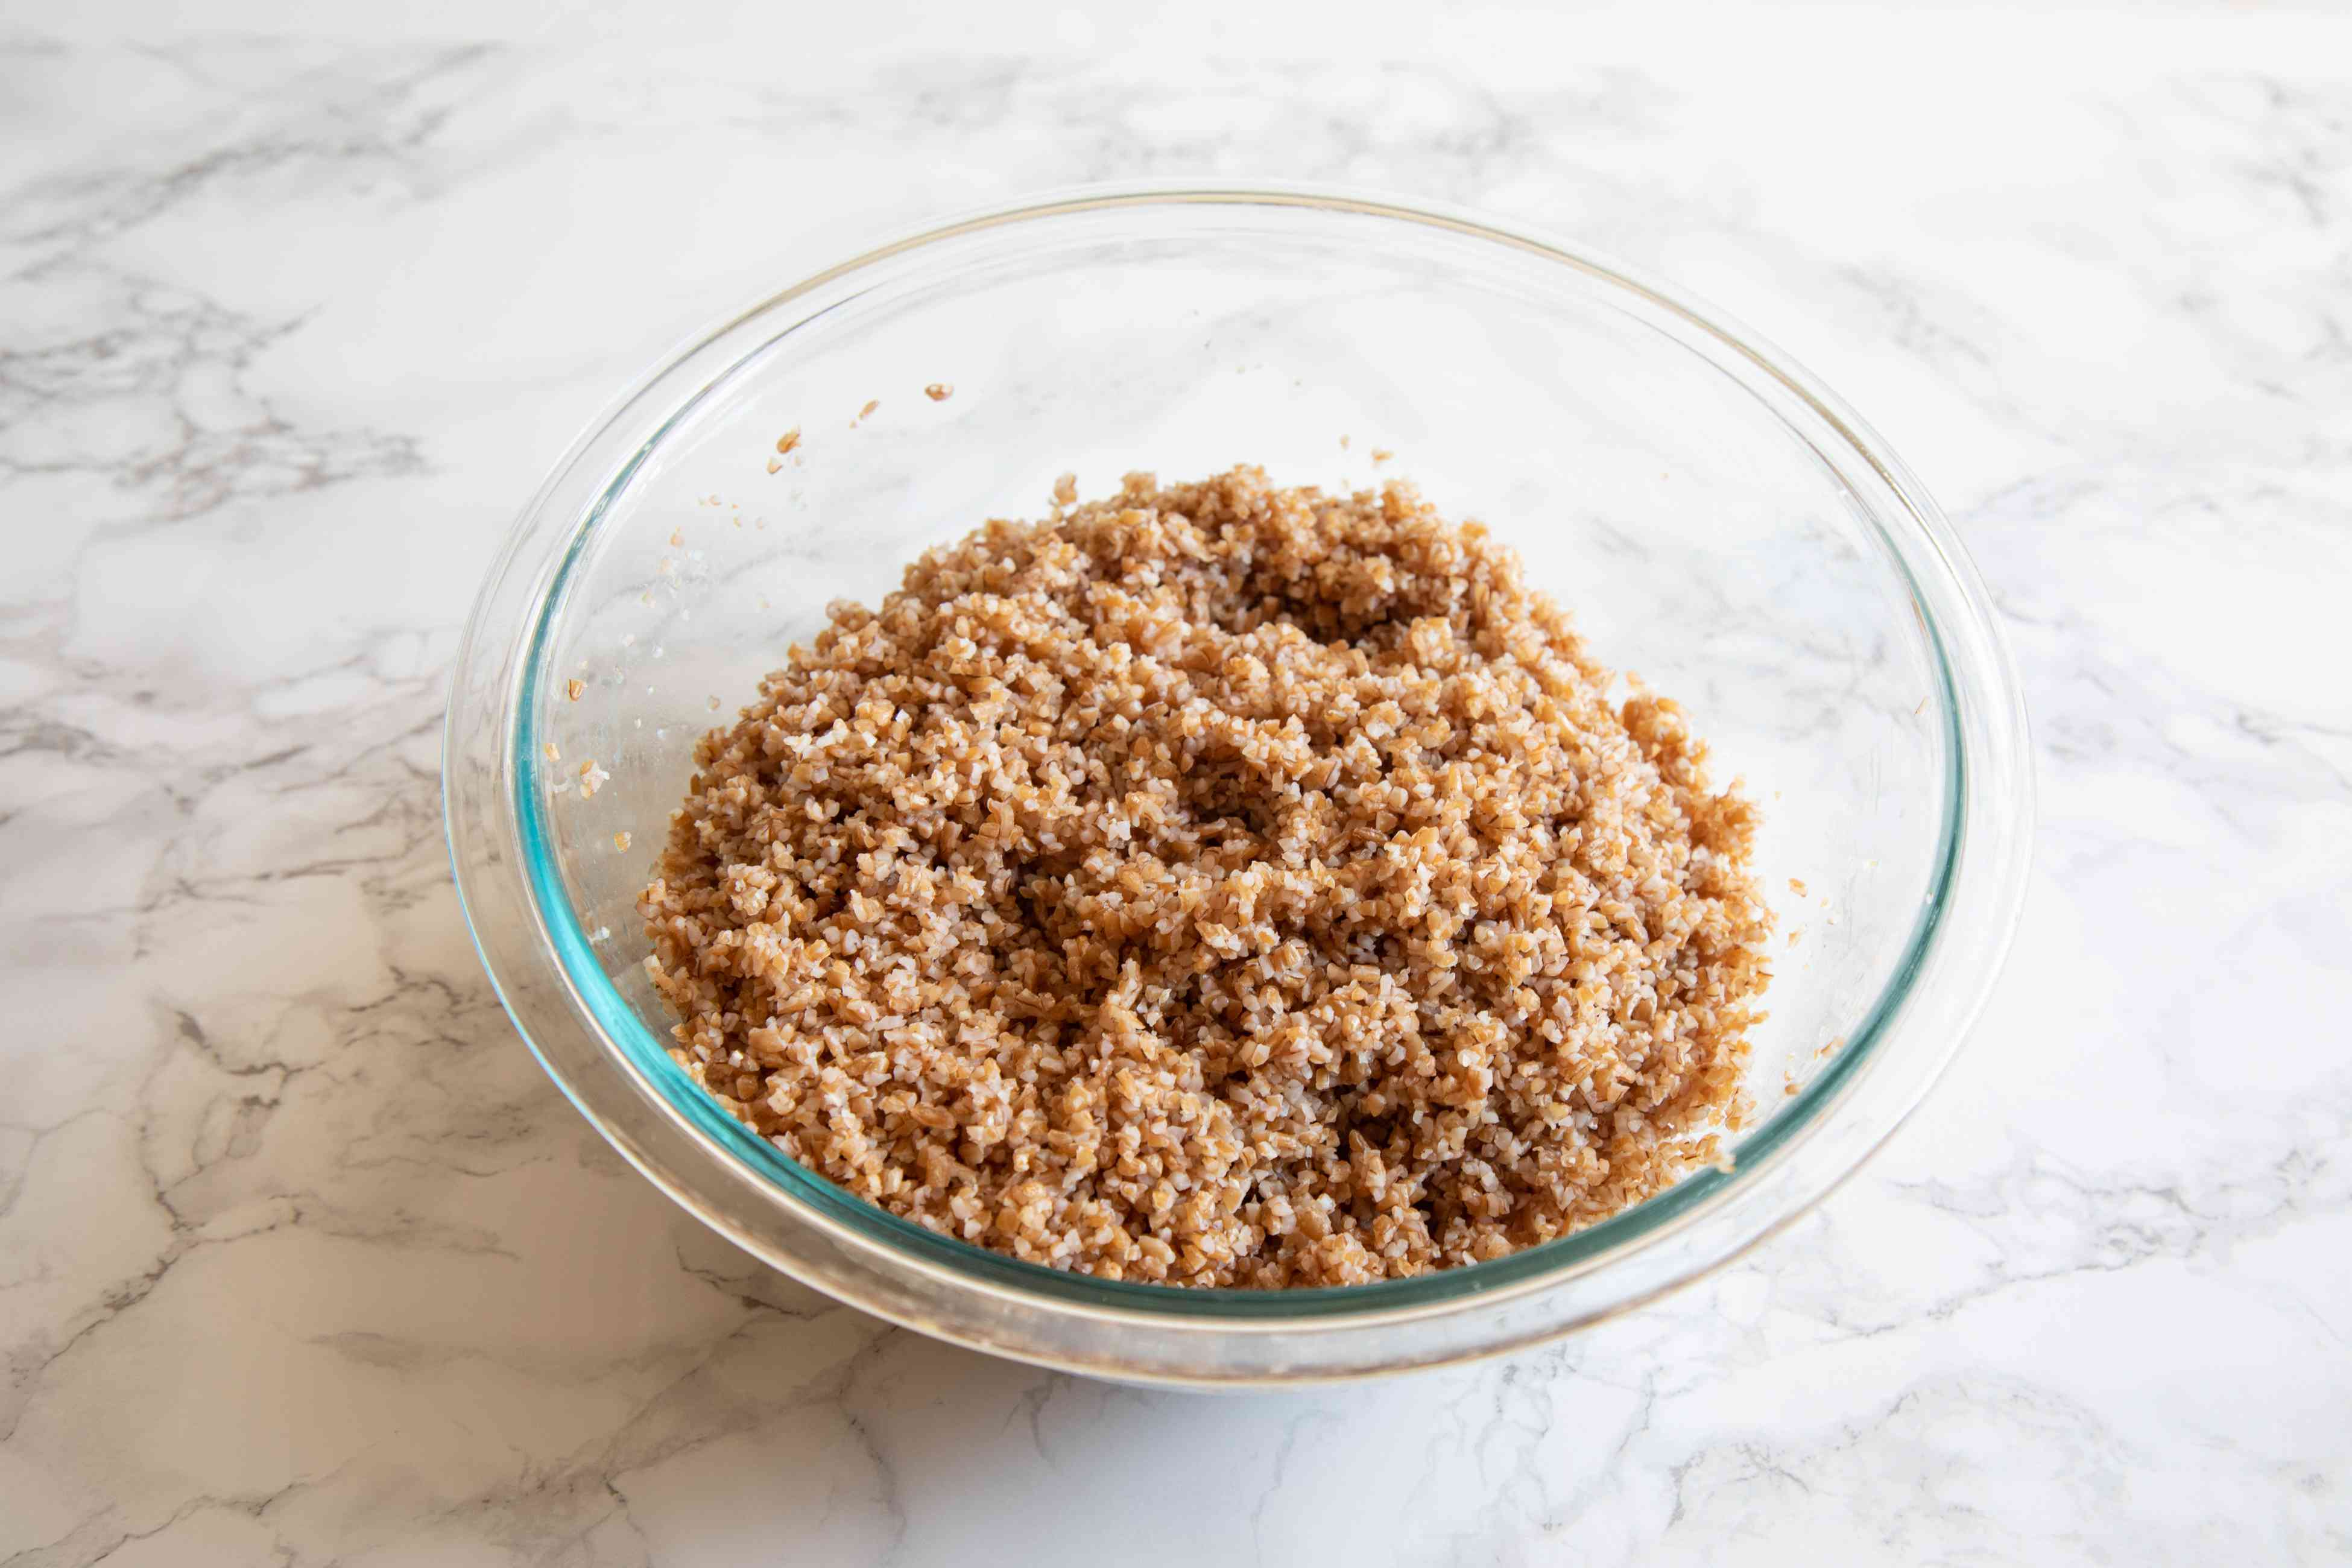 A glass bowl with bulgur to make a tabbouleh recipe.